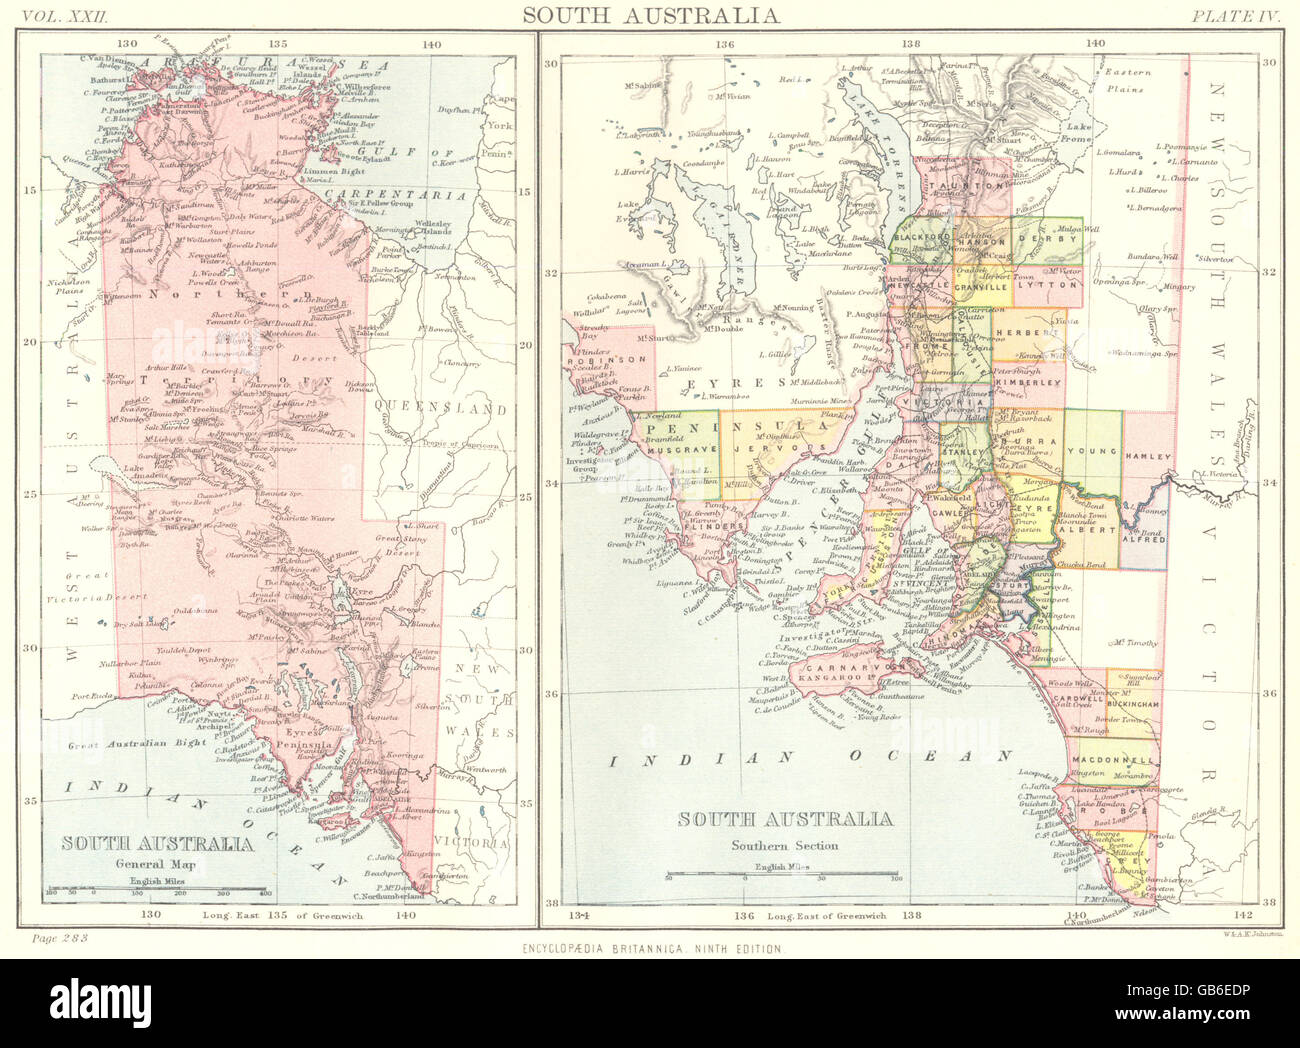 Map Of South Australia And Northern Territory.South Australia Showing Counties Northern Territory Britannica 9th